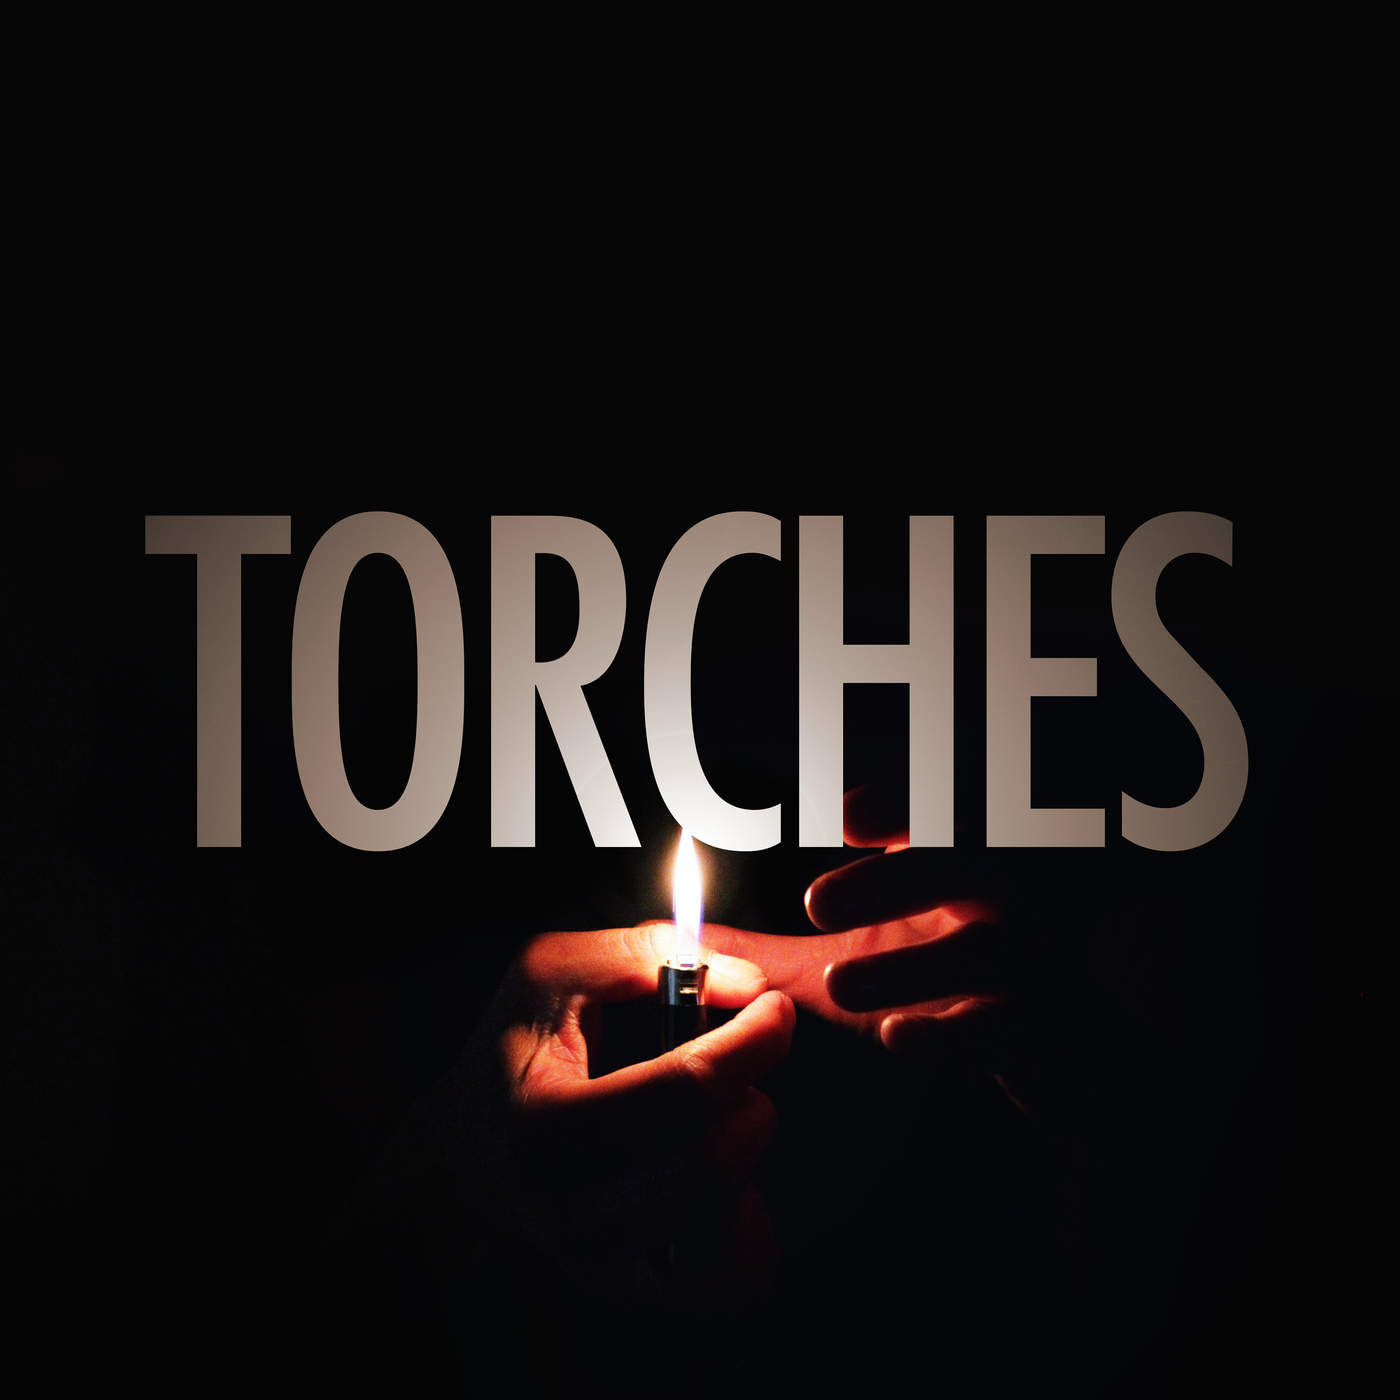 X Ambassadors - Torches - Single Cover